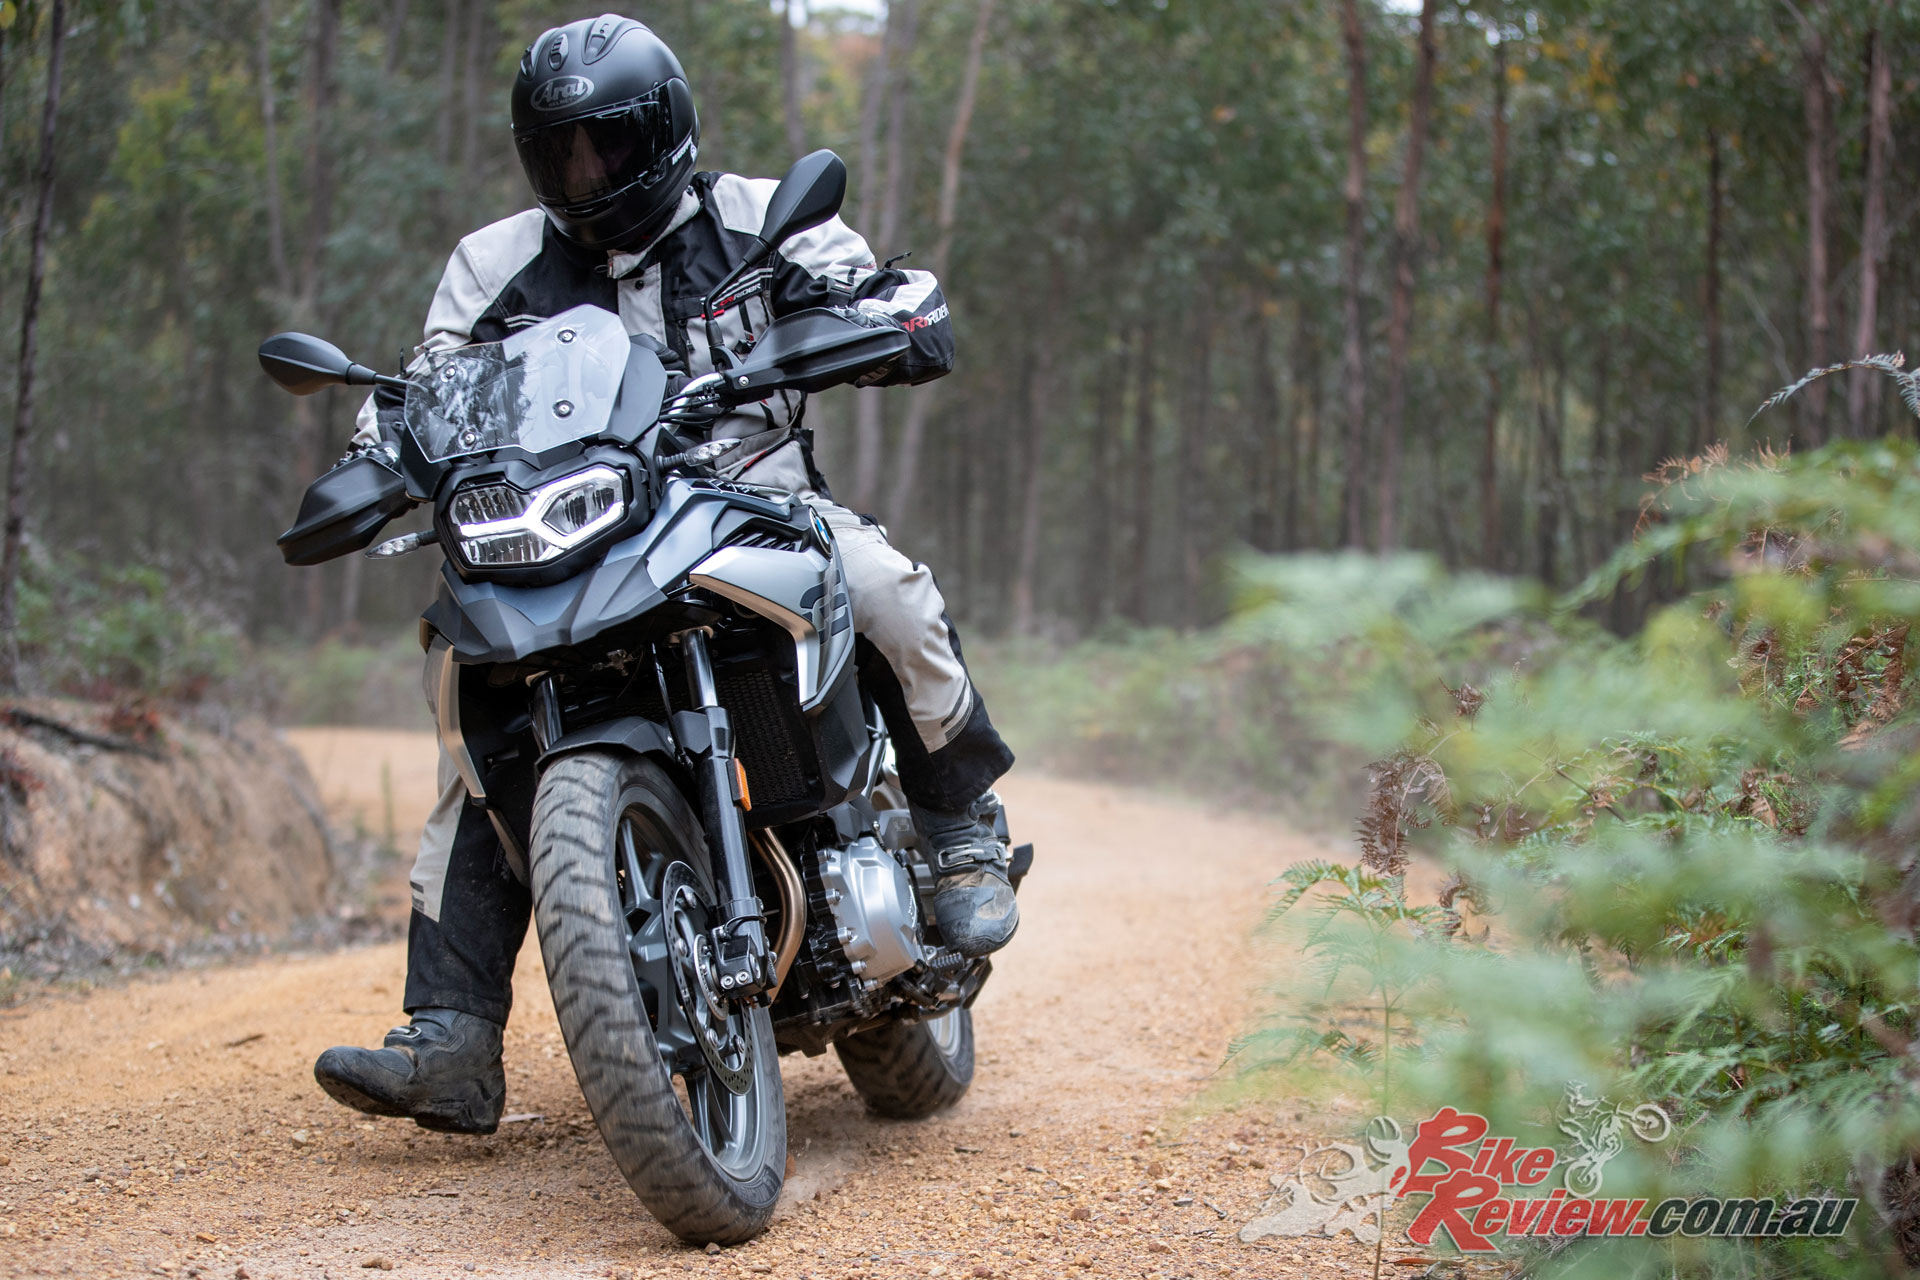 The F 750 GS isn't as hard edged an off-road choice as the larger 850, but is also aimed at a different rider